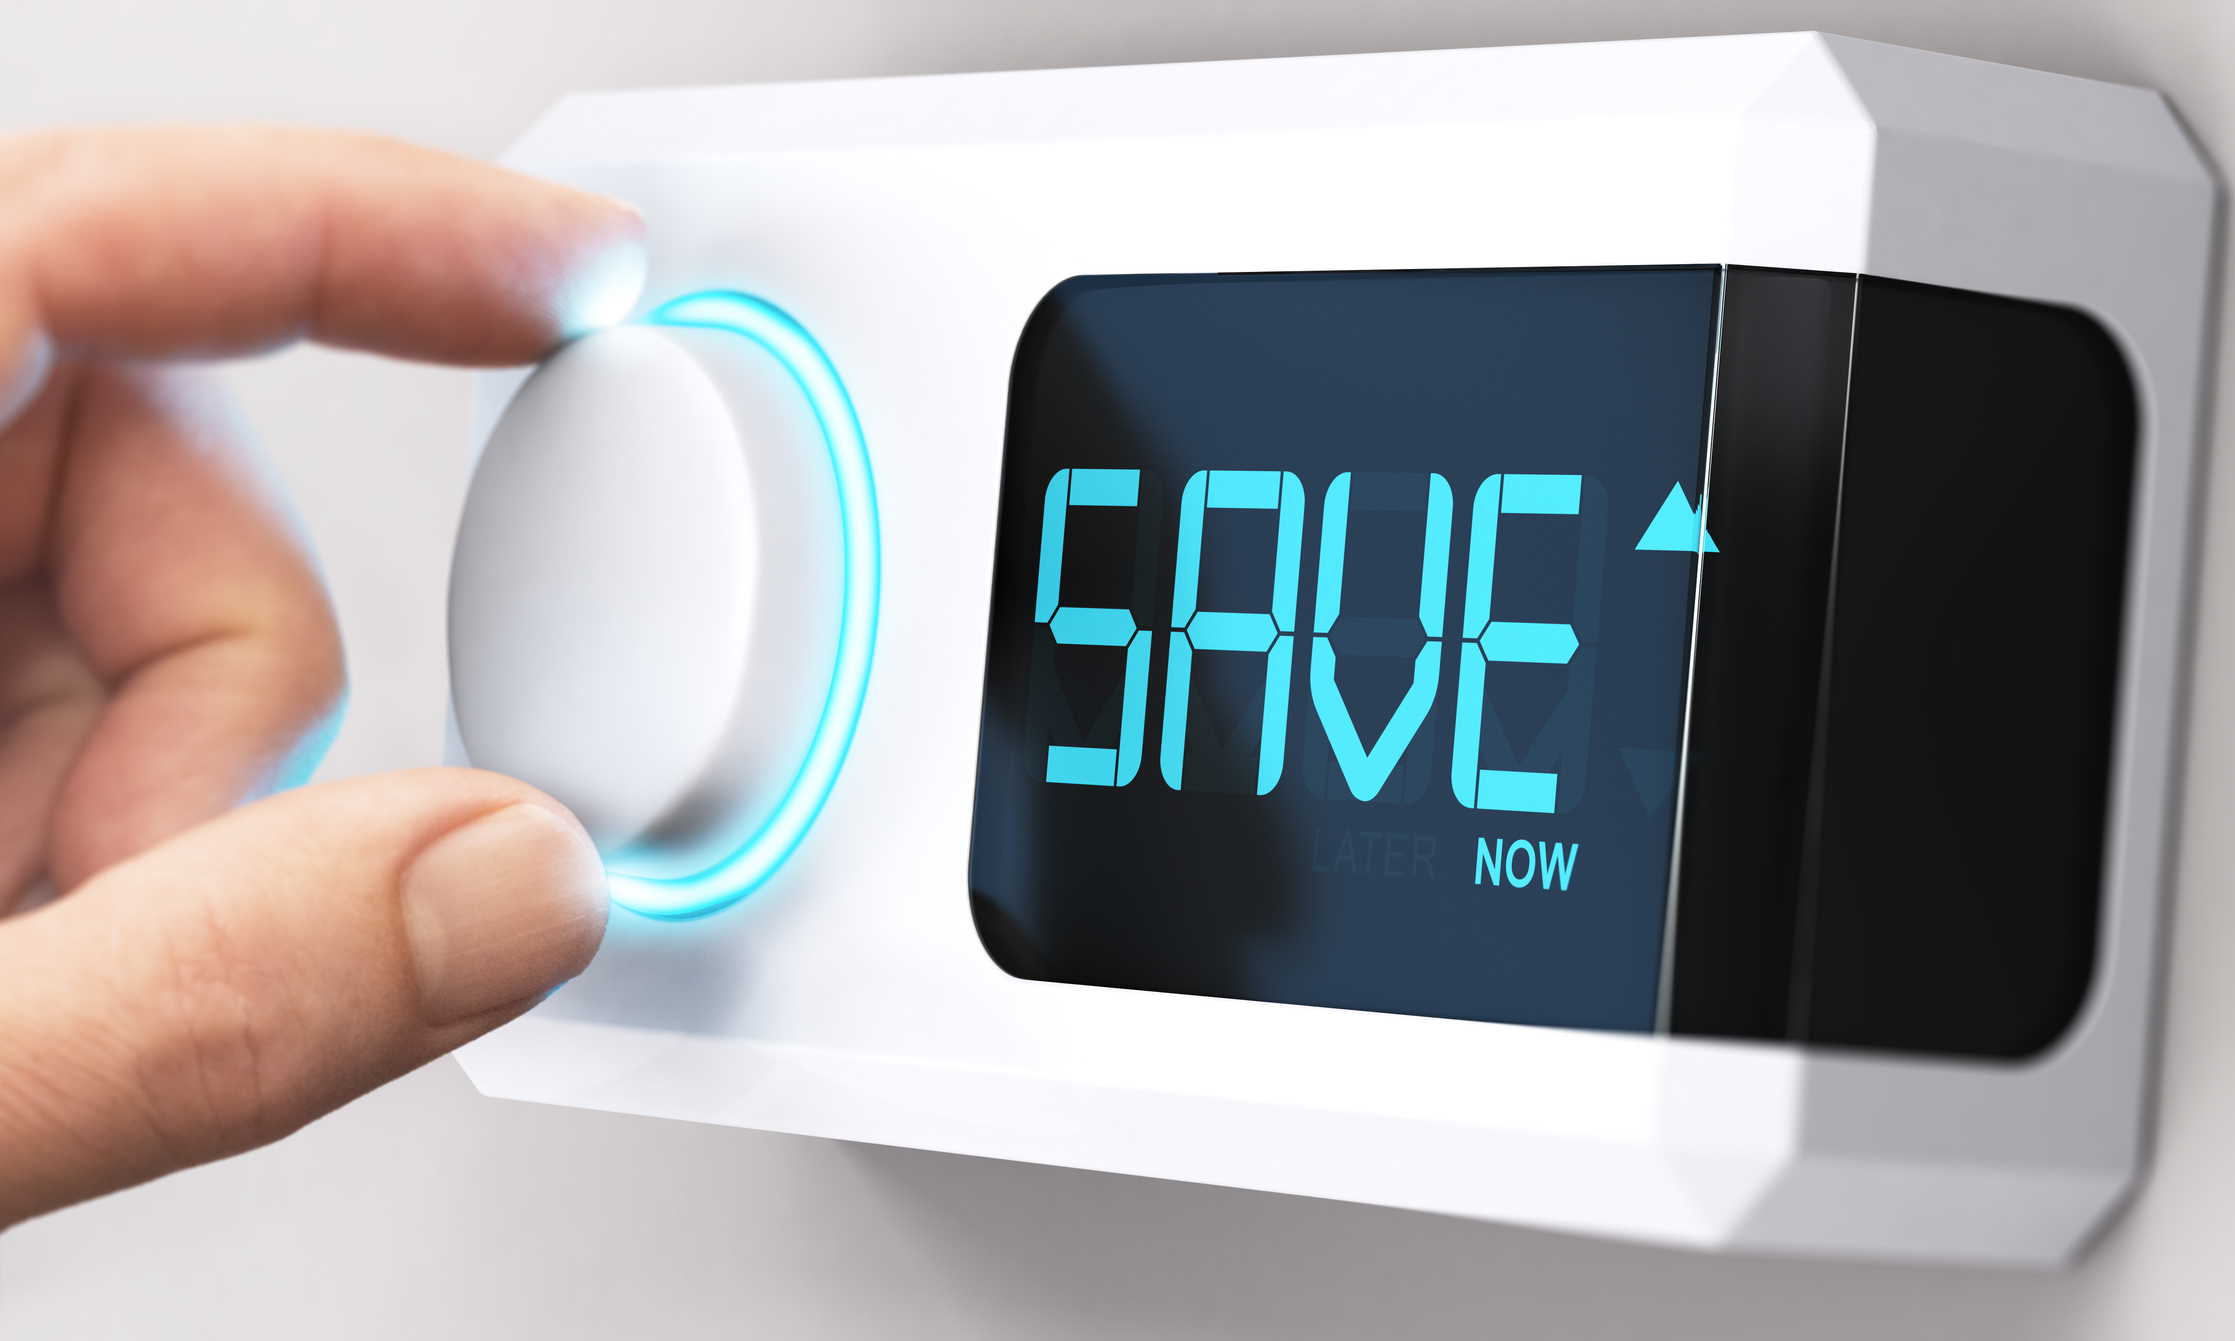 Hand turning a thermostat knob to increase savings by decreasing energy consumption. Composite image between a hand photography and a 3D background representing Energy-Efficient Features for condos for sale in bradenton fl.